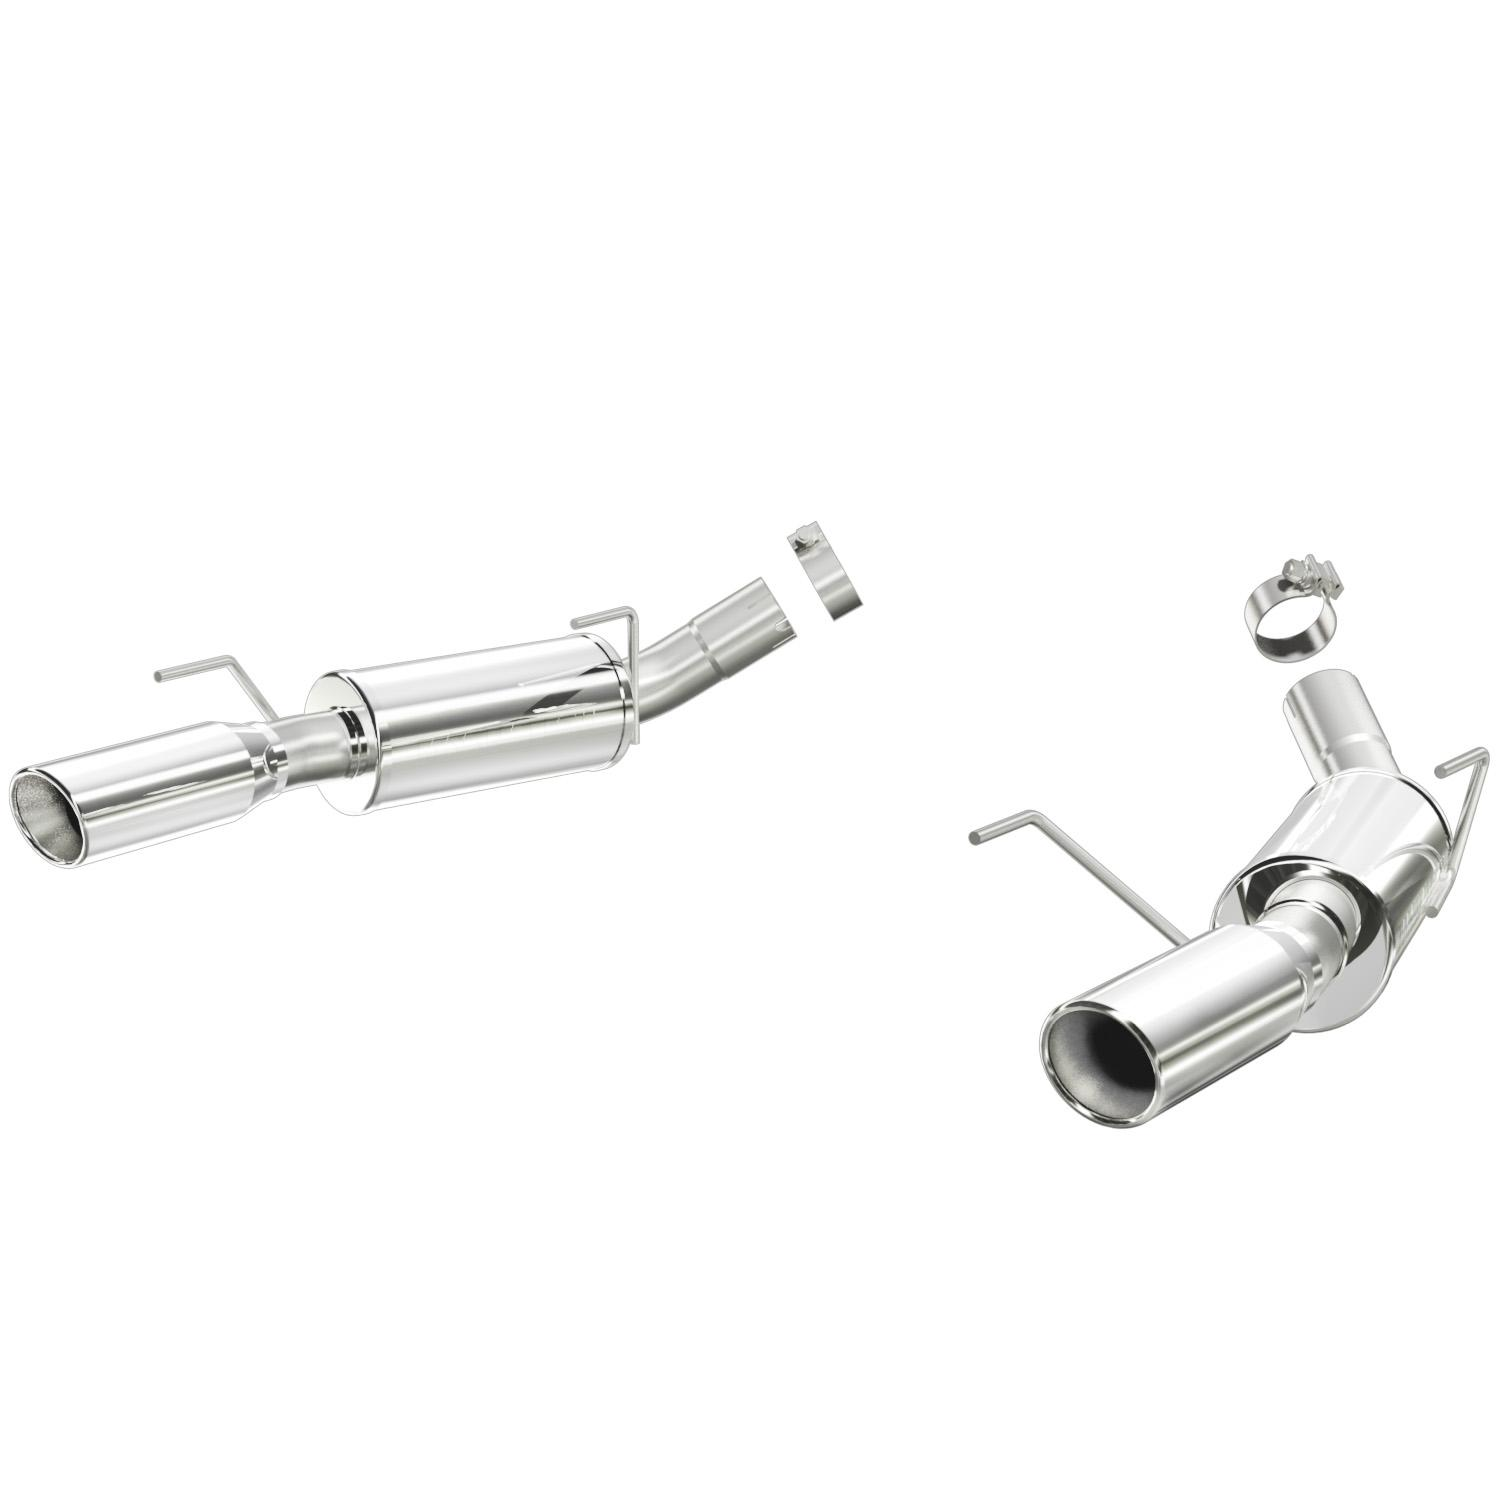 competition-series-stainless-axle-back-system